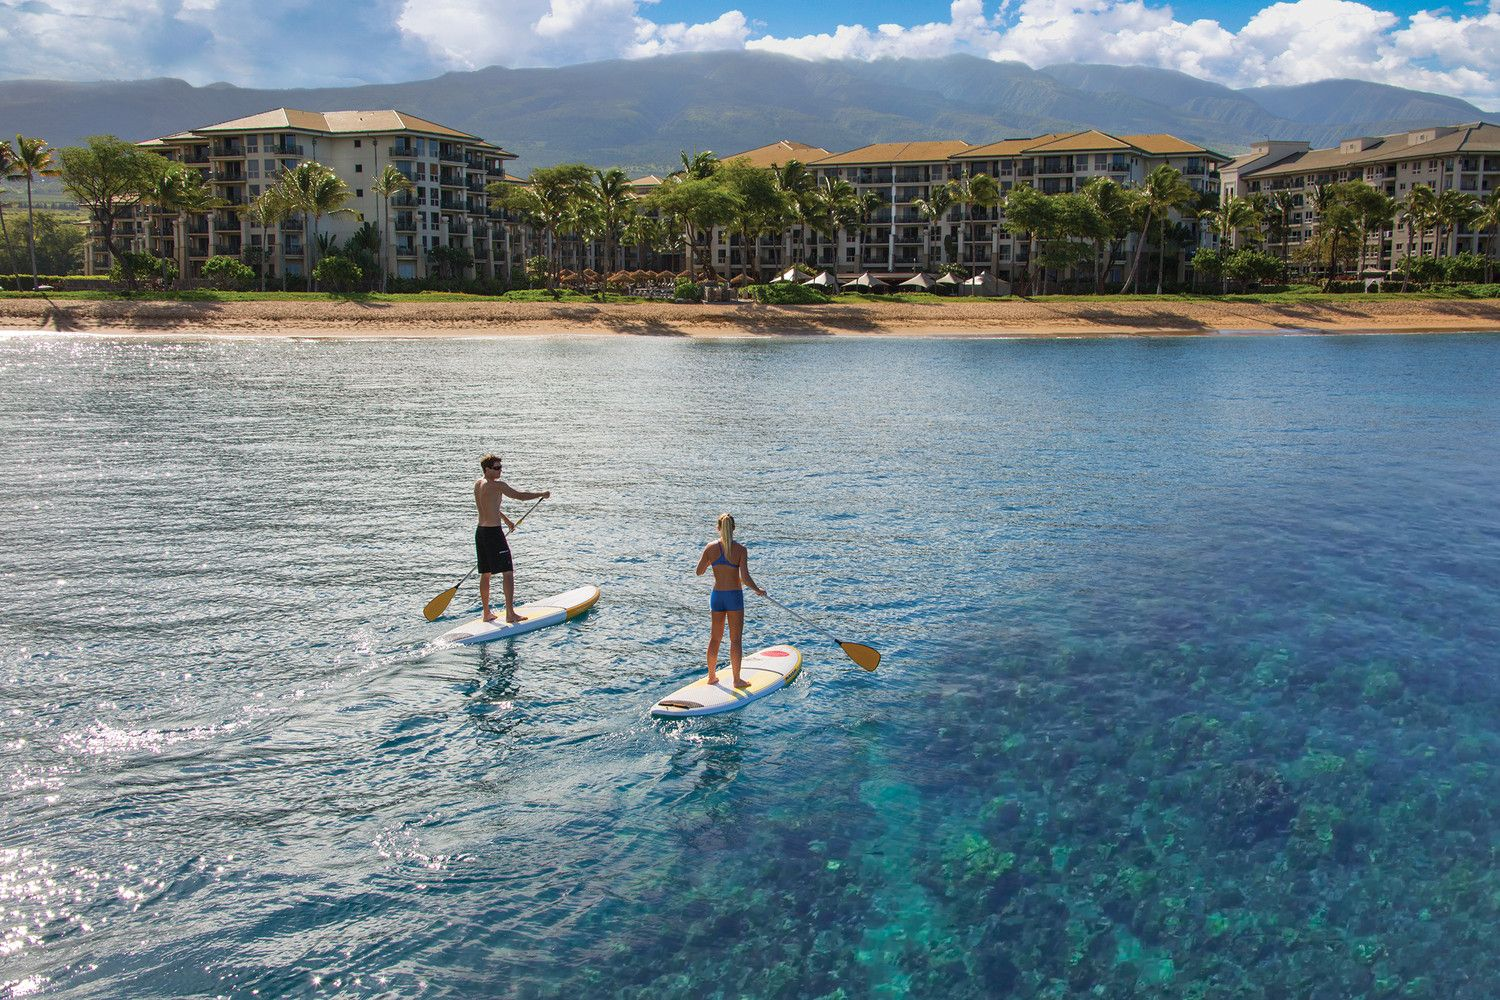 The Westin Ka'anapali Ocean Resort Villas - Paddle Boarding on Ocean